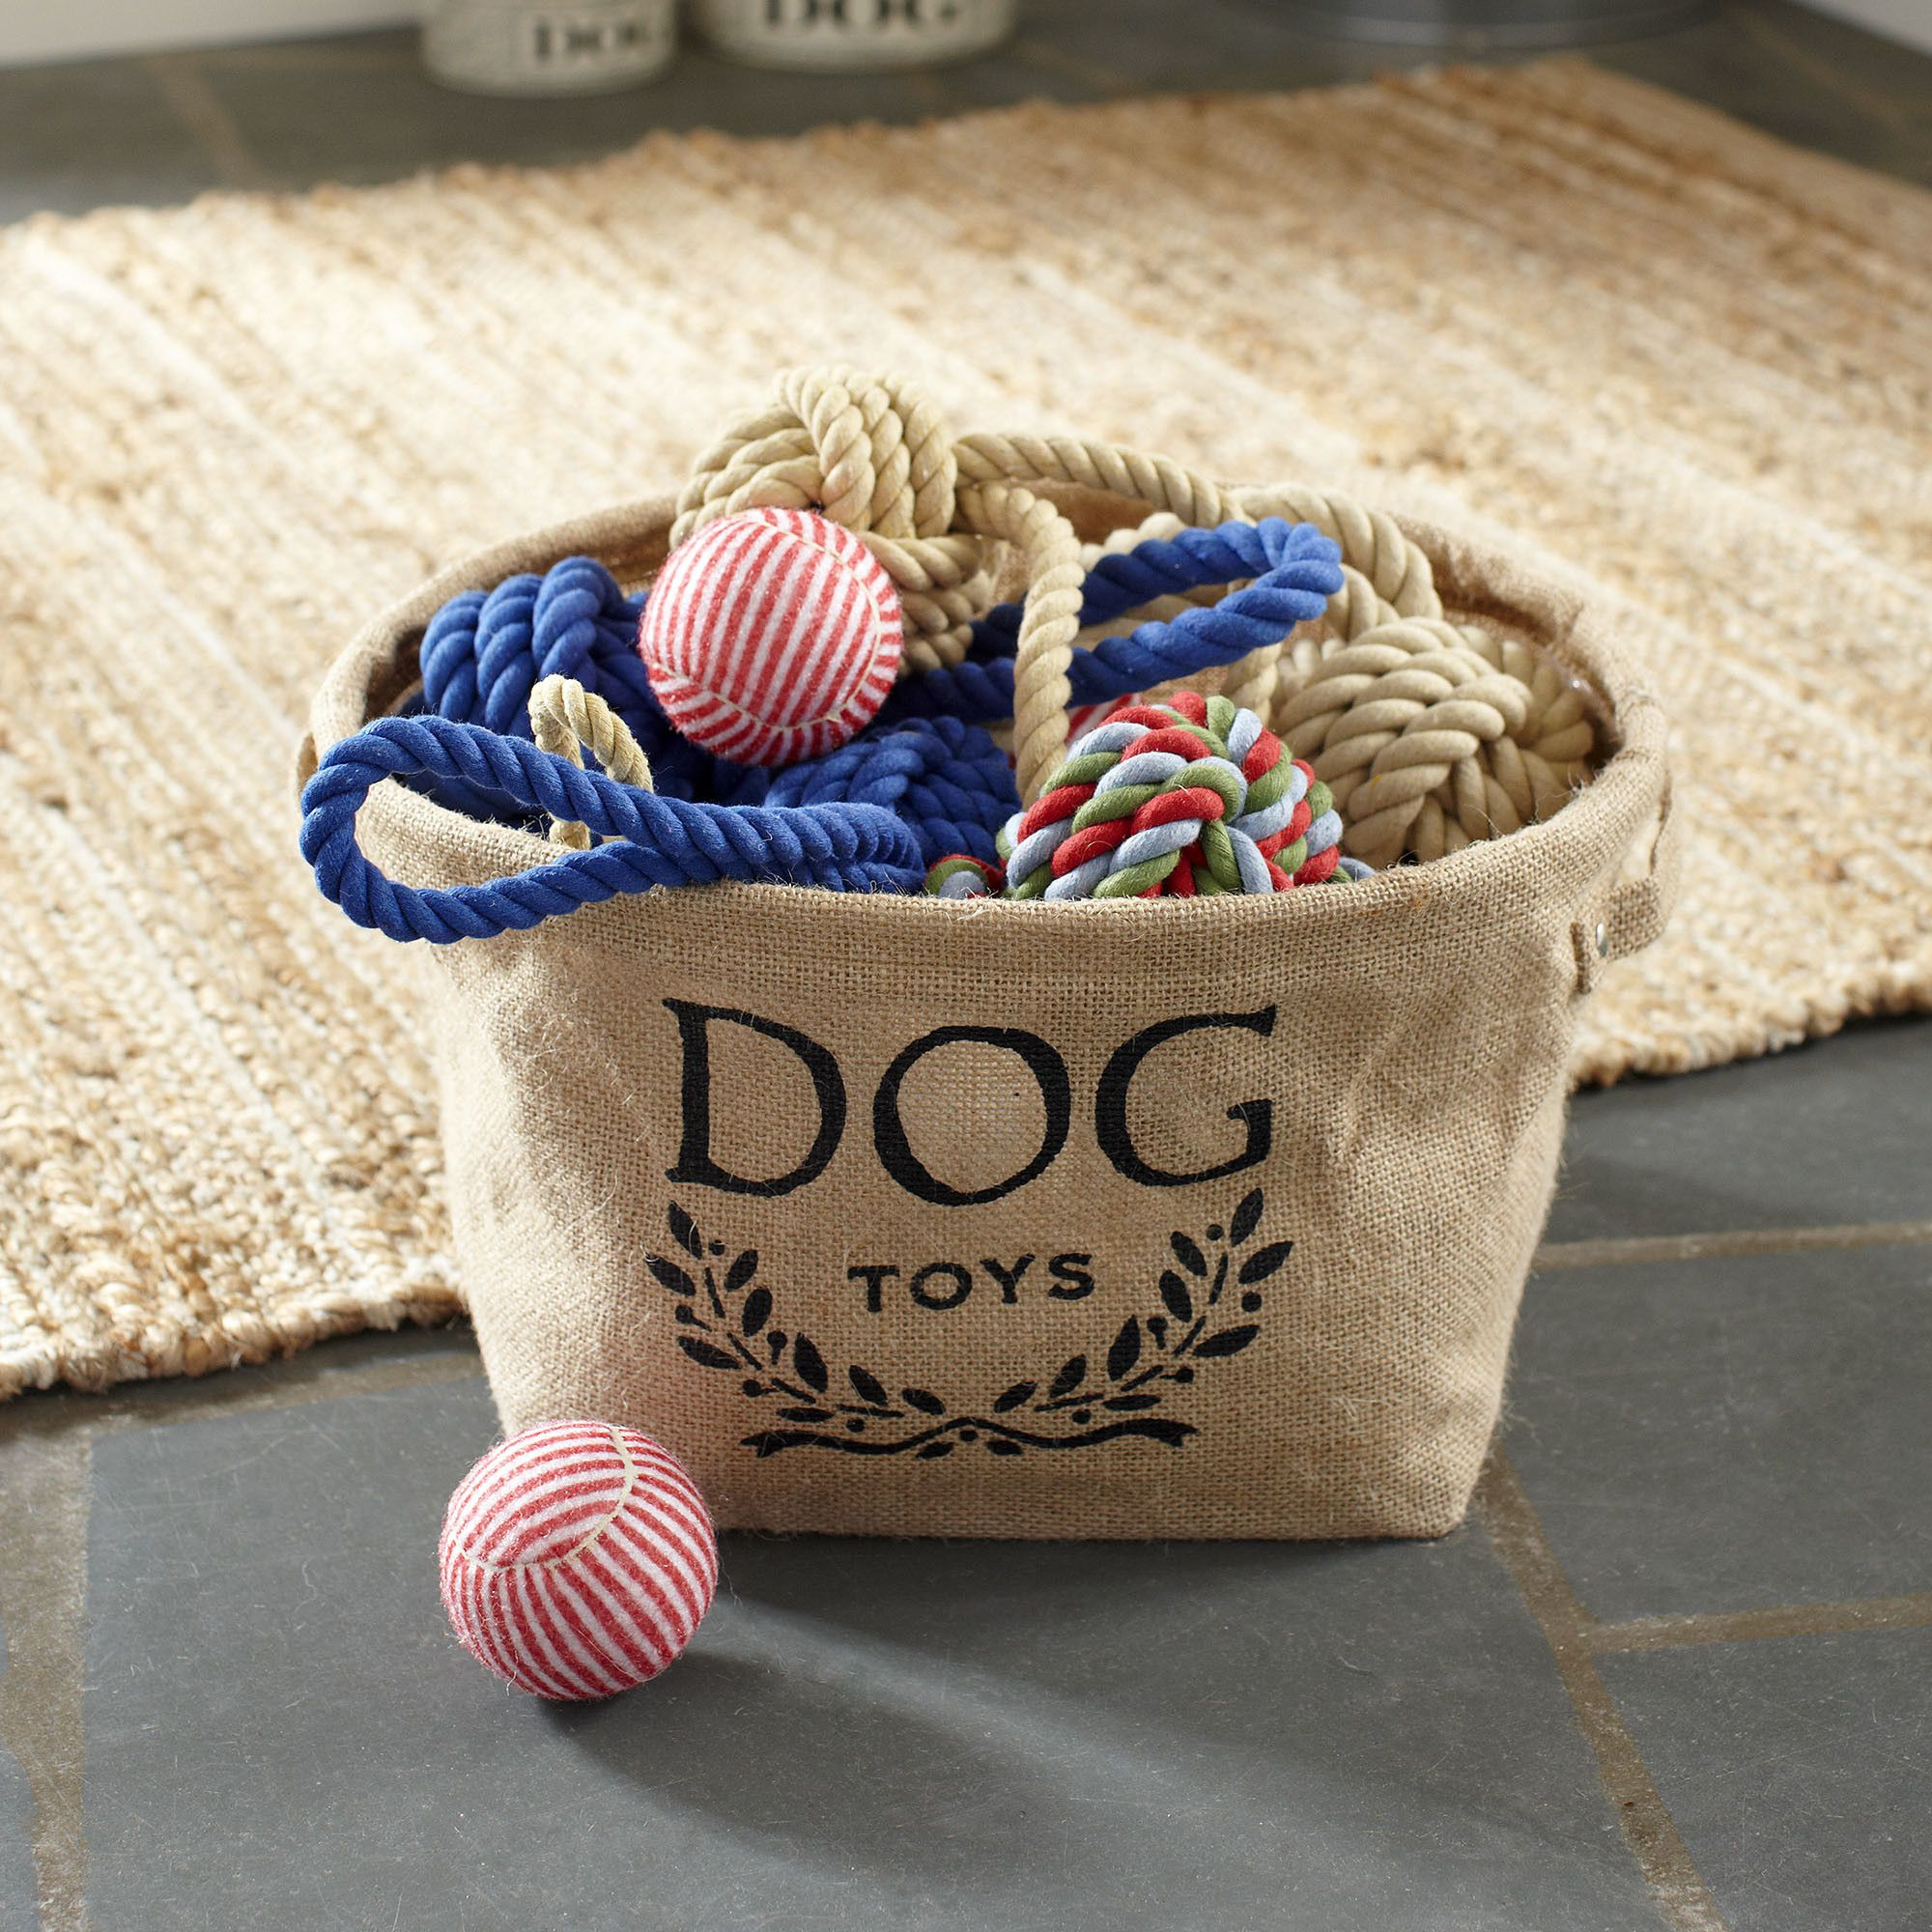 Roland Storage Basket | Organize pet toys and accessories with this eco-friendly, flexible storage basket. Made from woven hemp fibers, this basket's interior coating resists water and wipes clean easily.